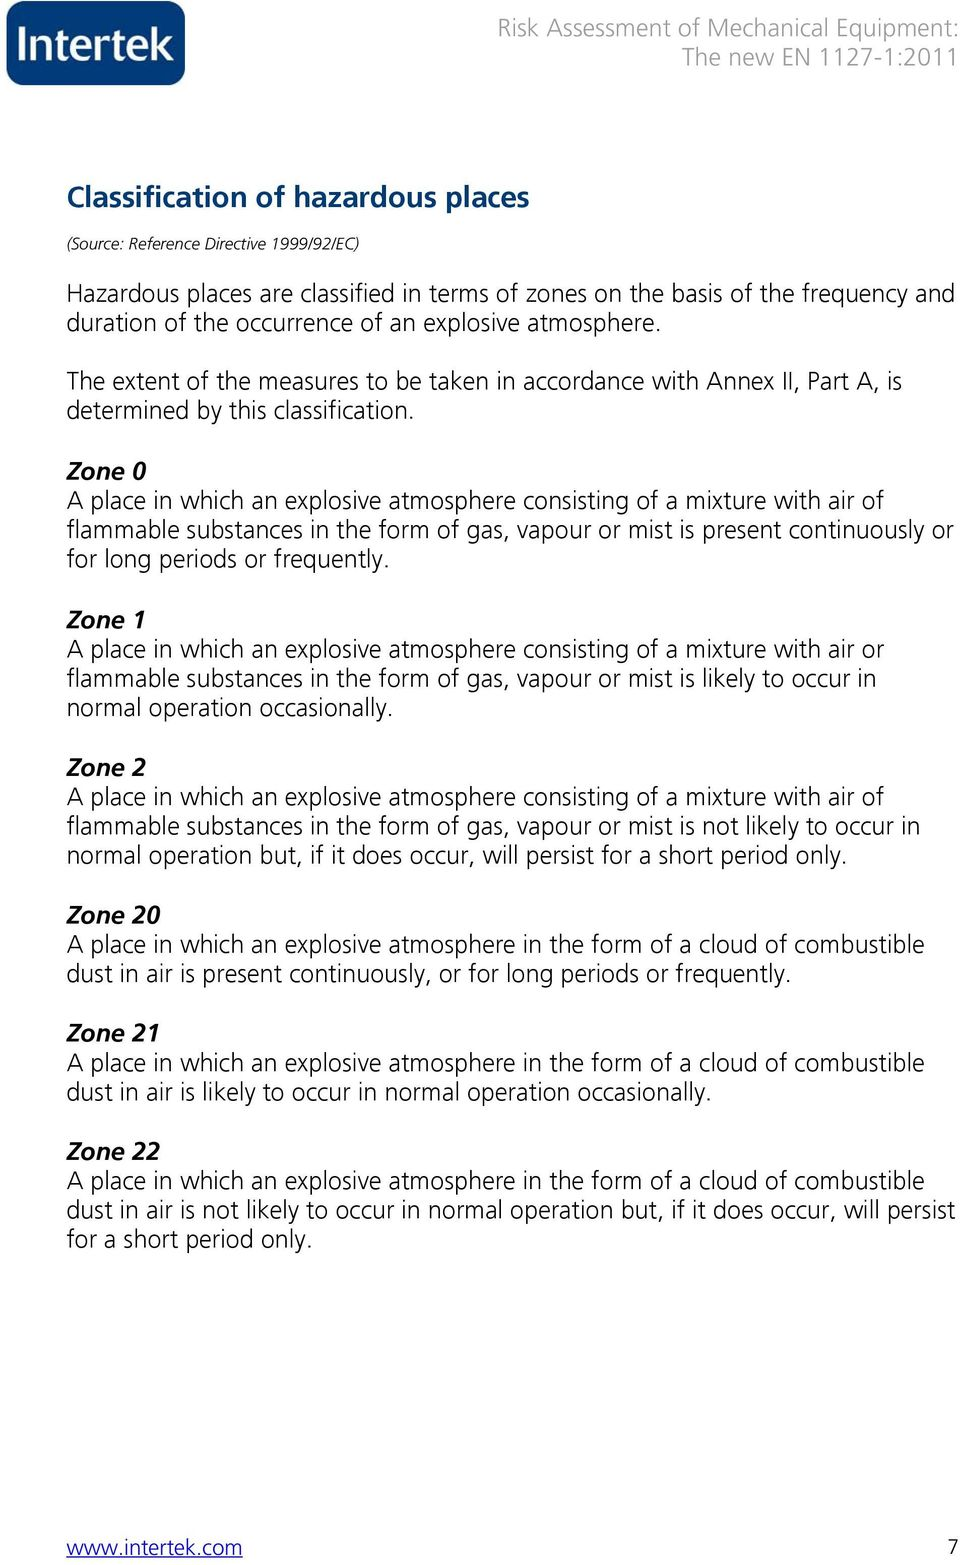 Zone 0 A place in which an explosive atmosphere consisting of a mixture with air of flammable substances in the form of gas, vapour or mist is present continuously or for long periods or frequently.